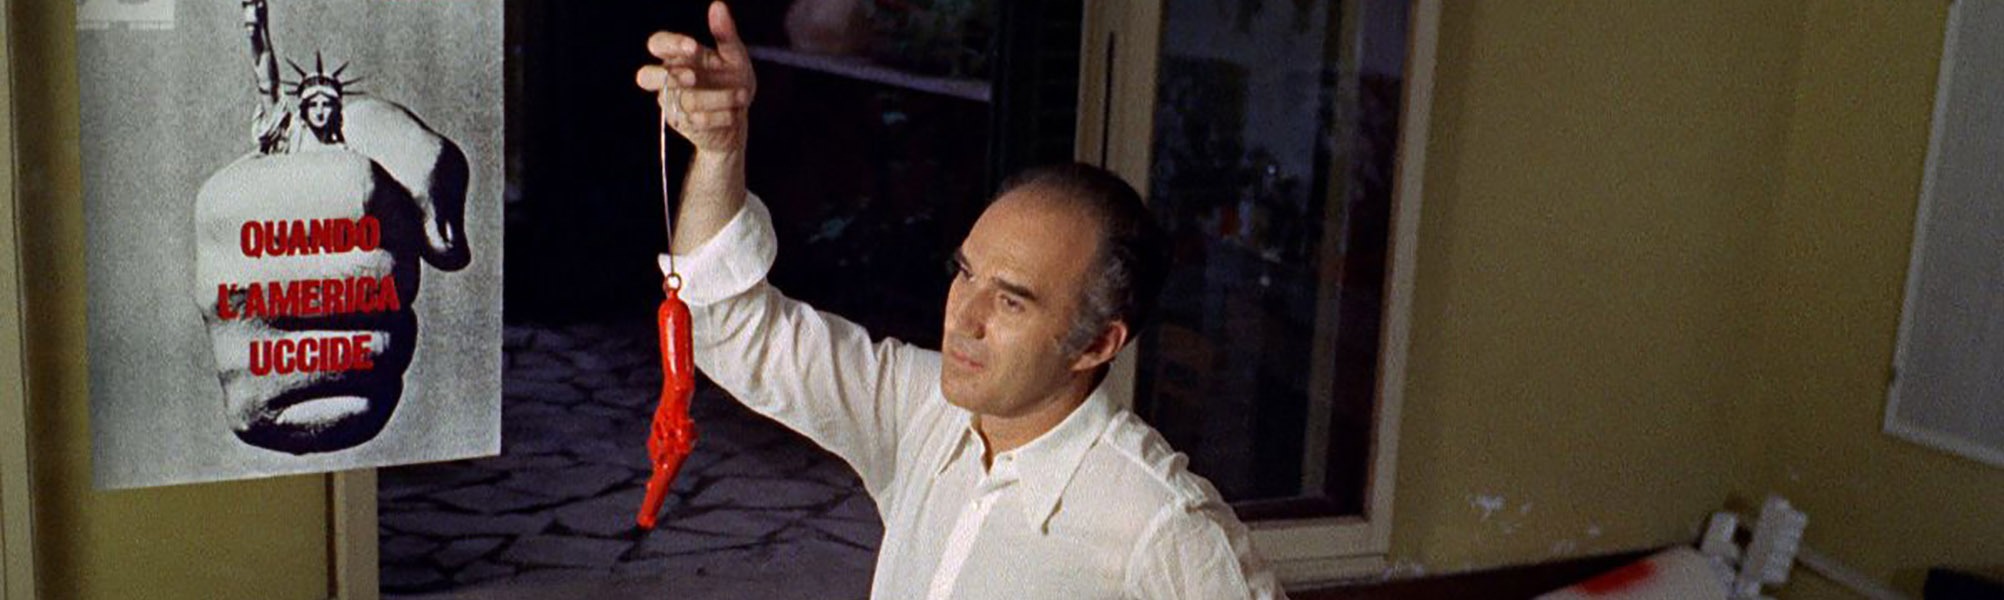 Addio a Michel Piccoli: la sua carriera in 5 film